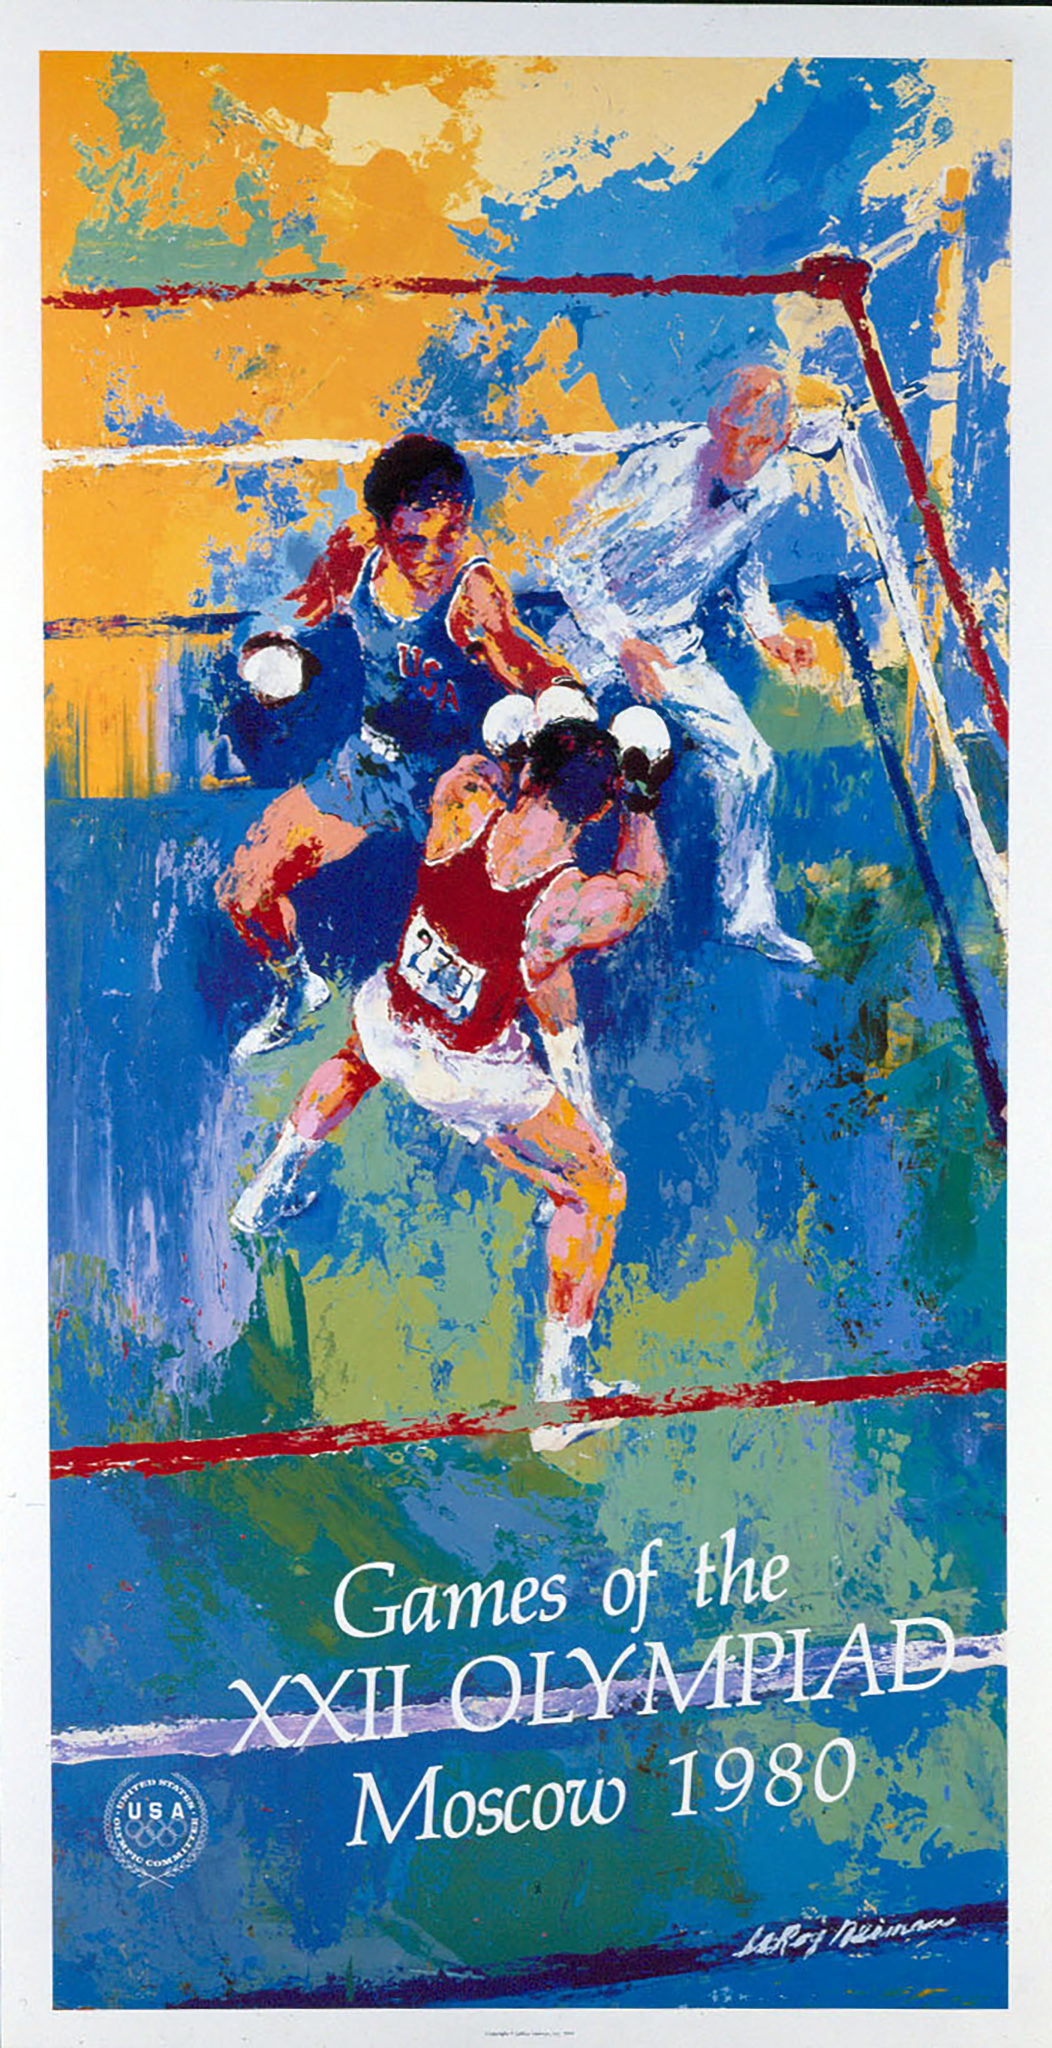 Games of the XXII Olympiad Moscow 1980 poster